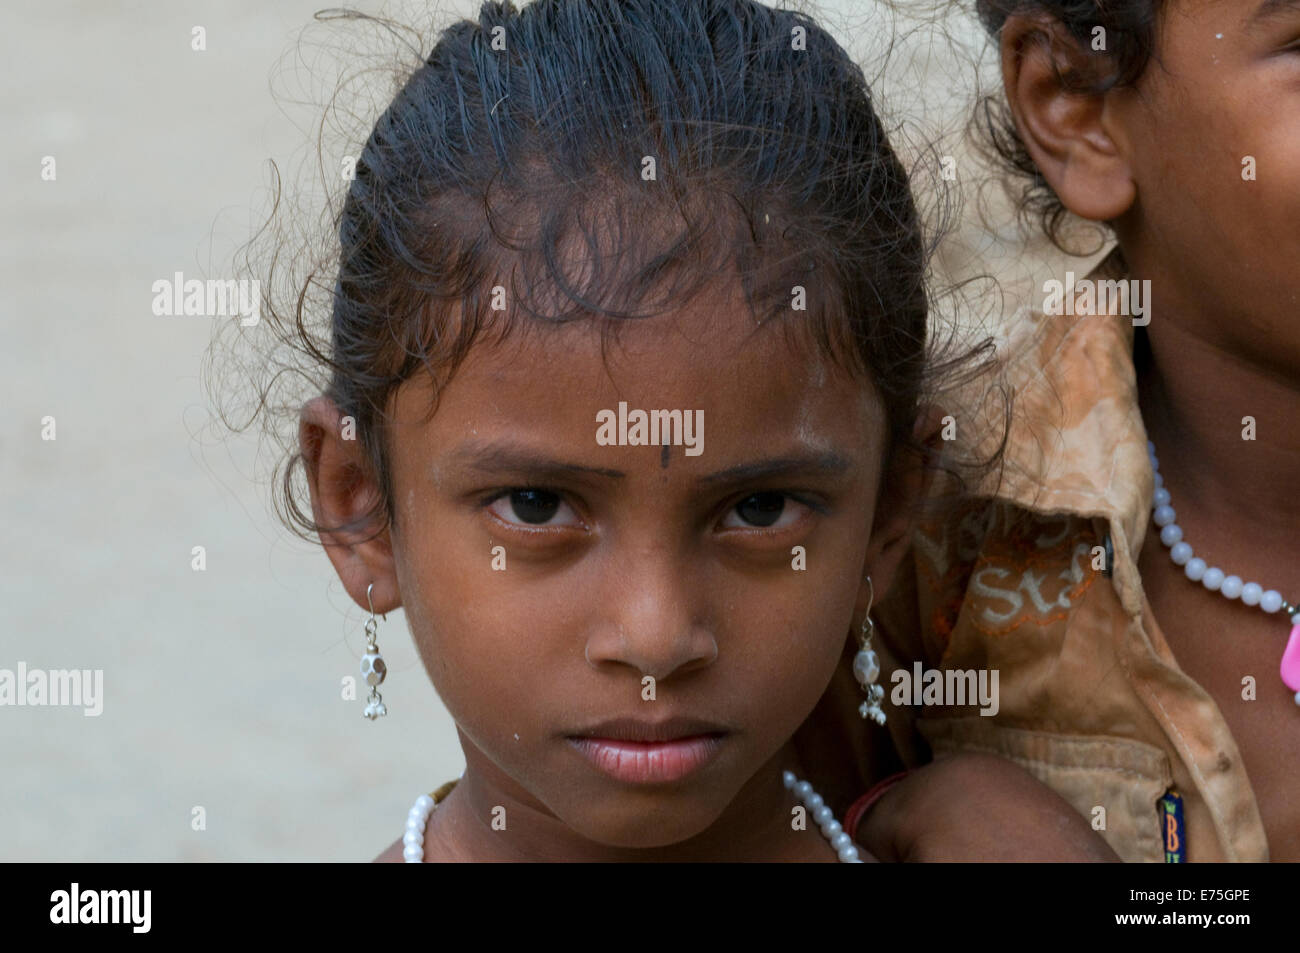 Sultry looking Indian girl child looks deeply into camera in Tiruvannamalai at the foot of Arunachala sacred hill - Stock Image